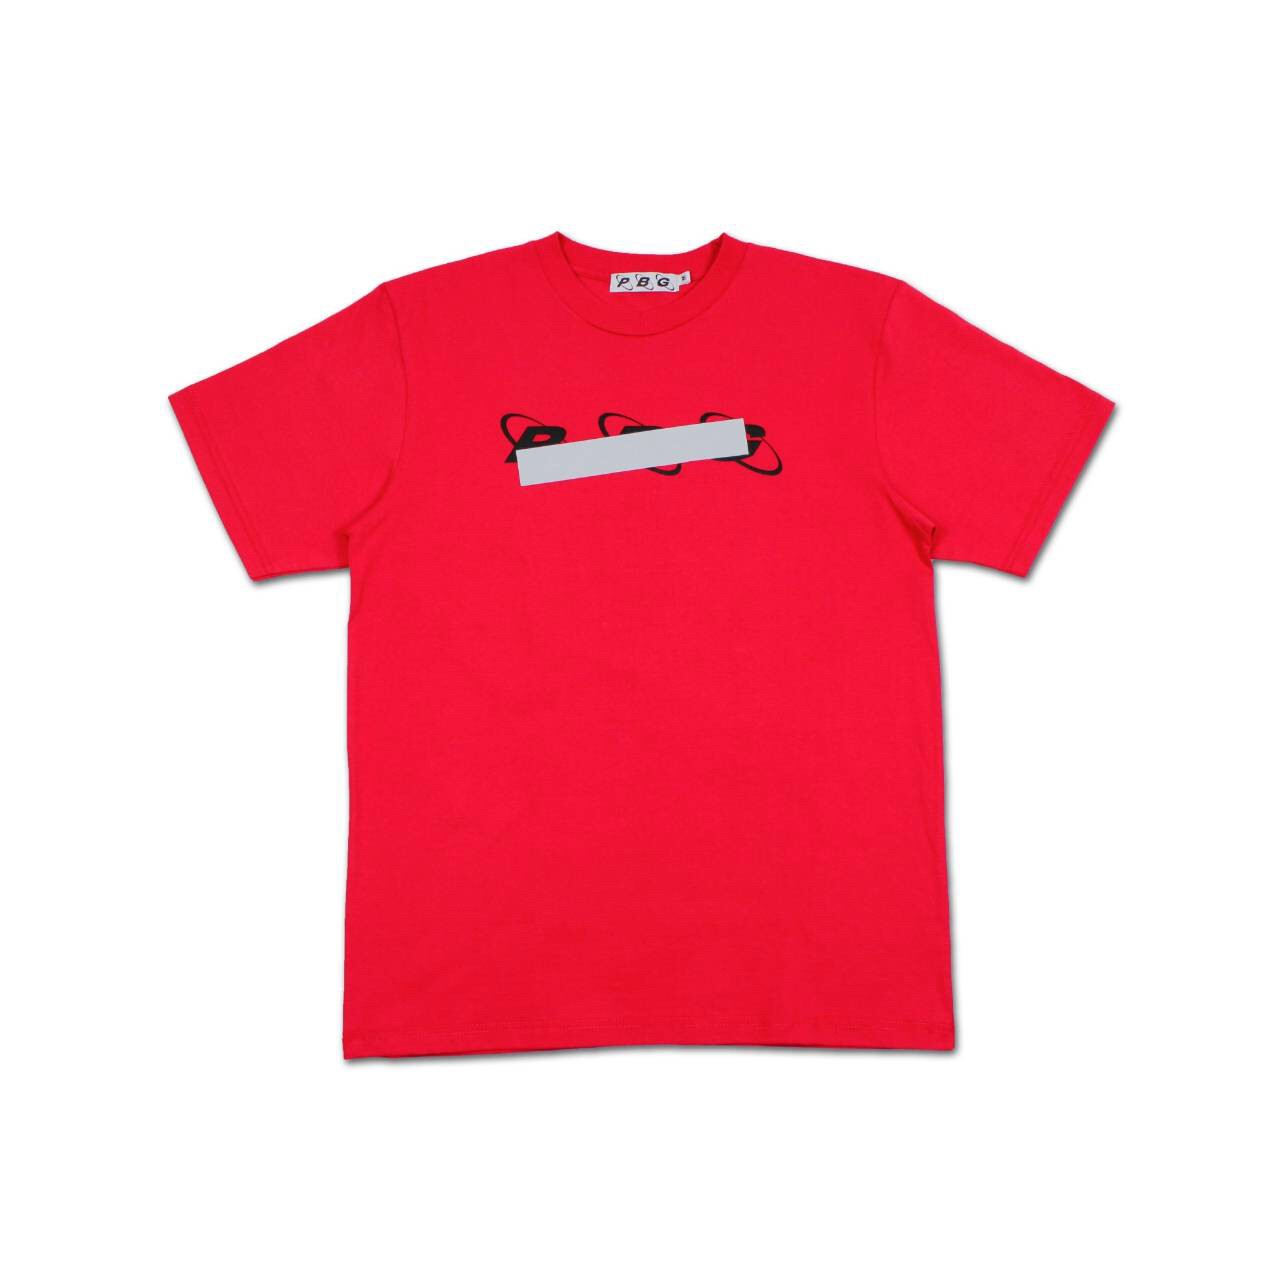 PRETTYBOYGEAR REFLECT TEE RED